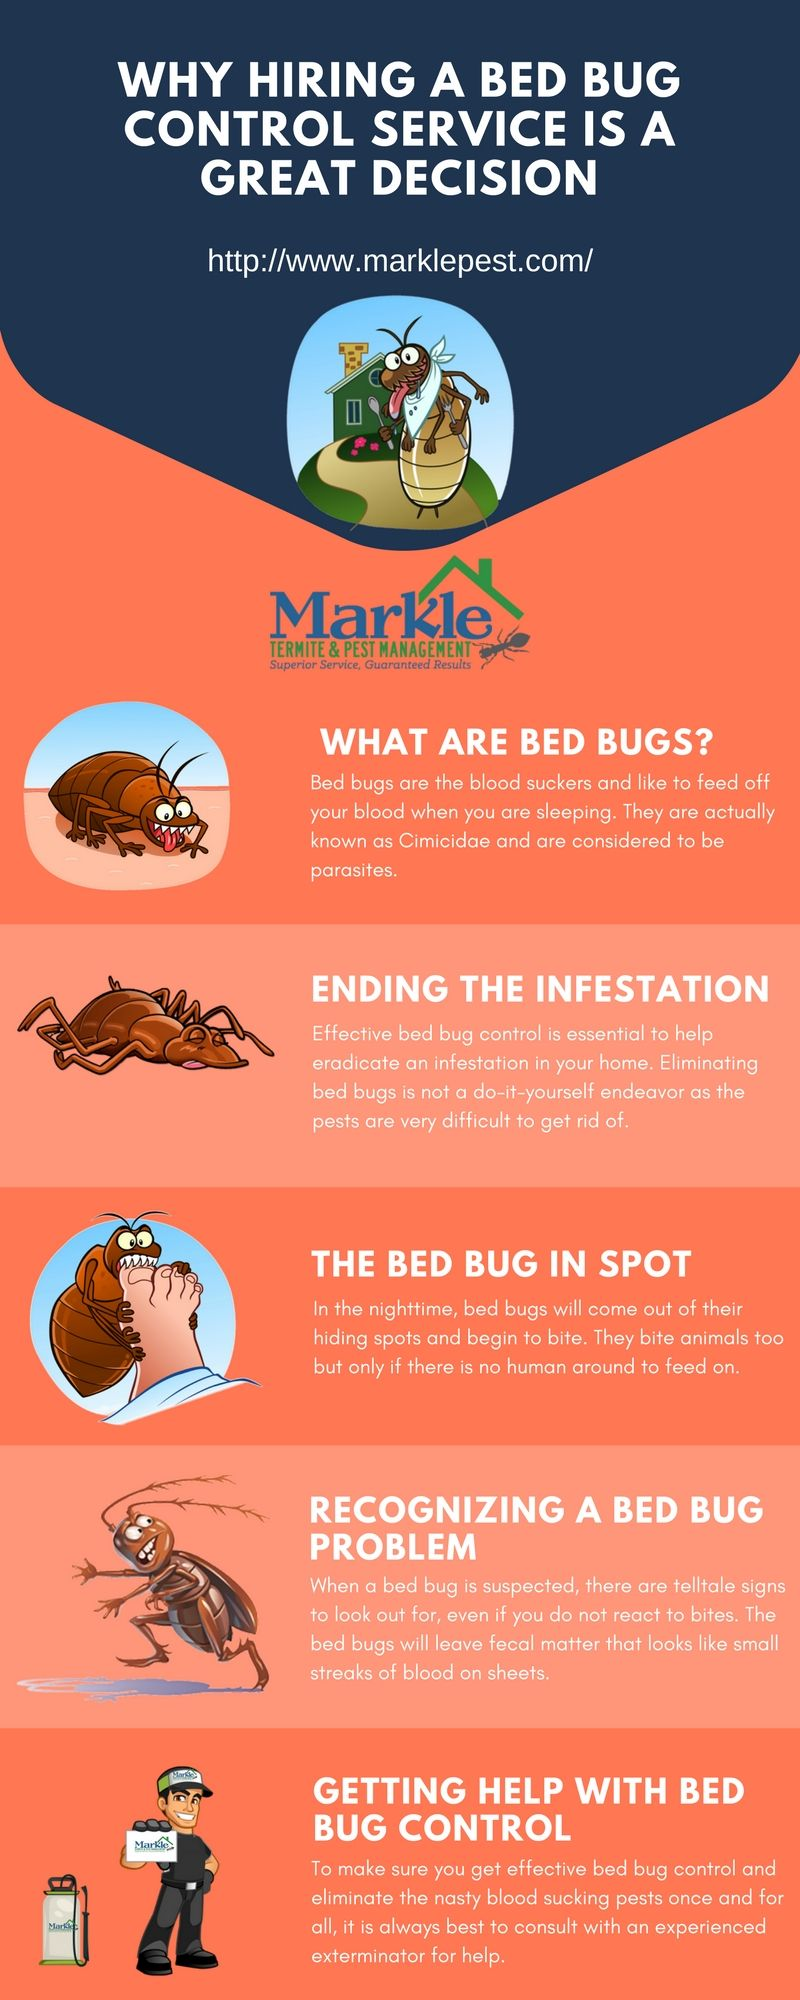 Pin on Termite and Pest Control Services